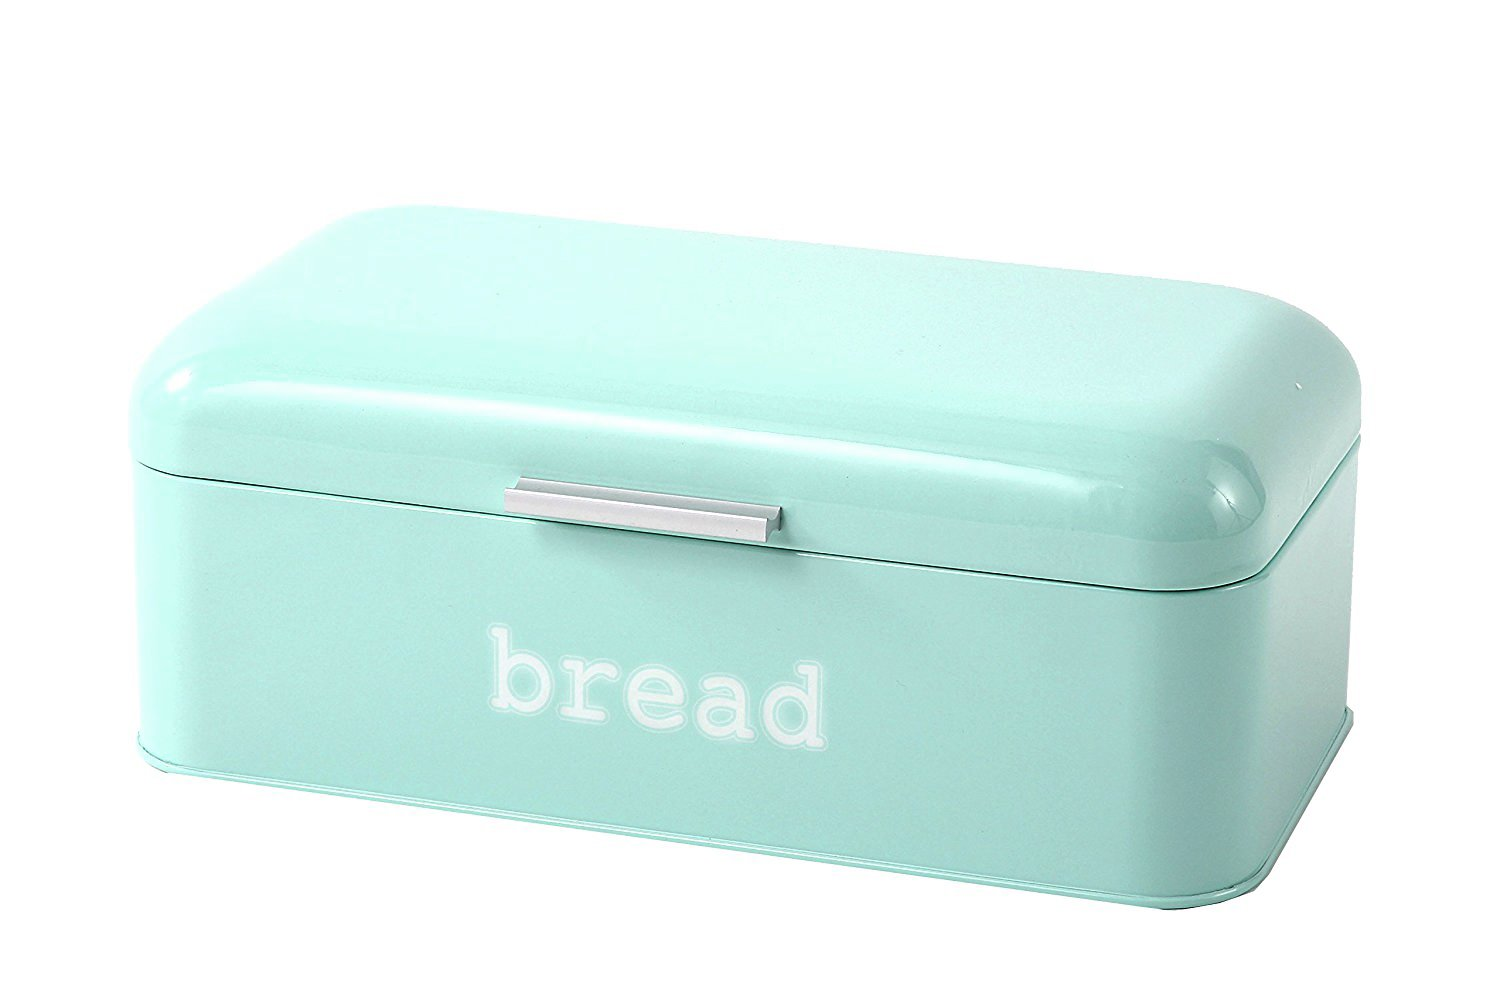 Juvale Bread Box for Kitchen Counter - Stainless Steel Bread Bin, Dry Food Storage Container for Loaves, Pastries, Toast and More - Retro Vintage Design, Light Blue, 16.75 x 9 x 6.5 inches